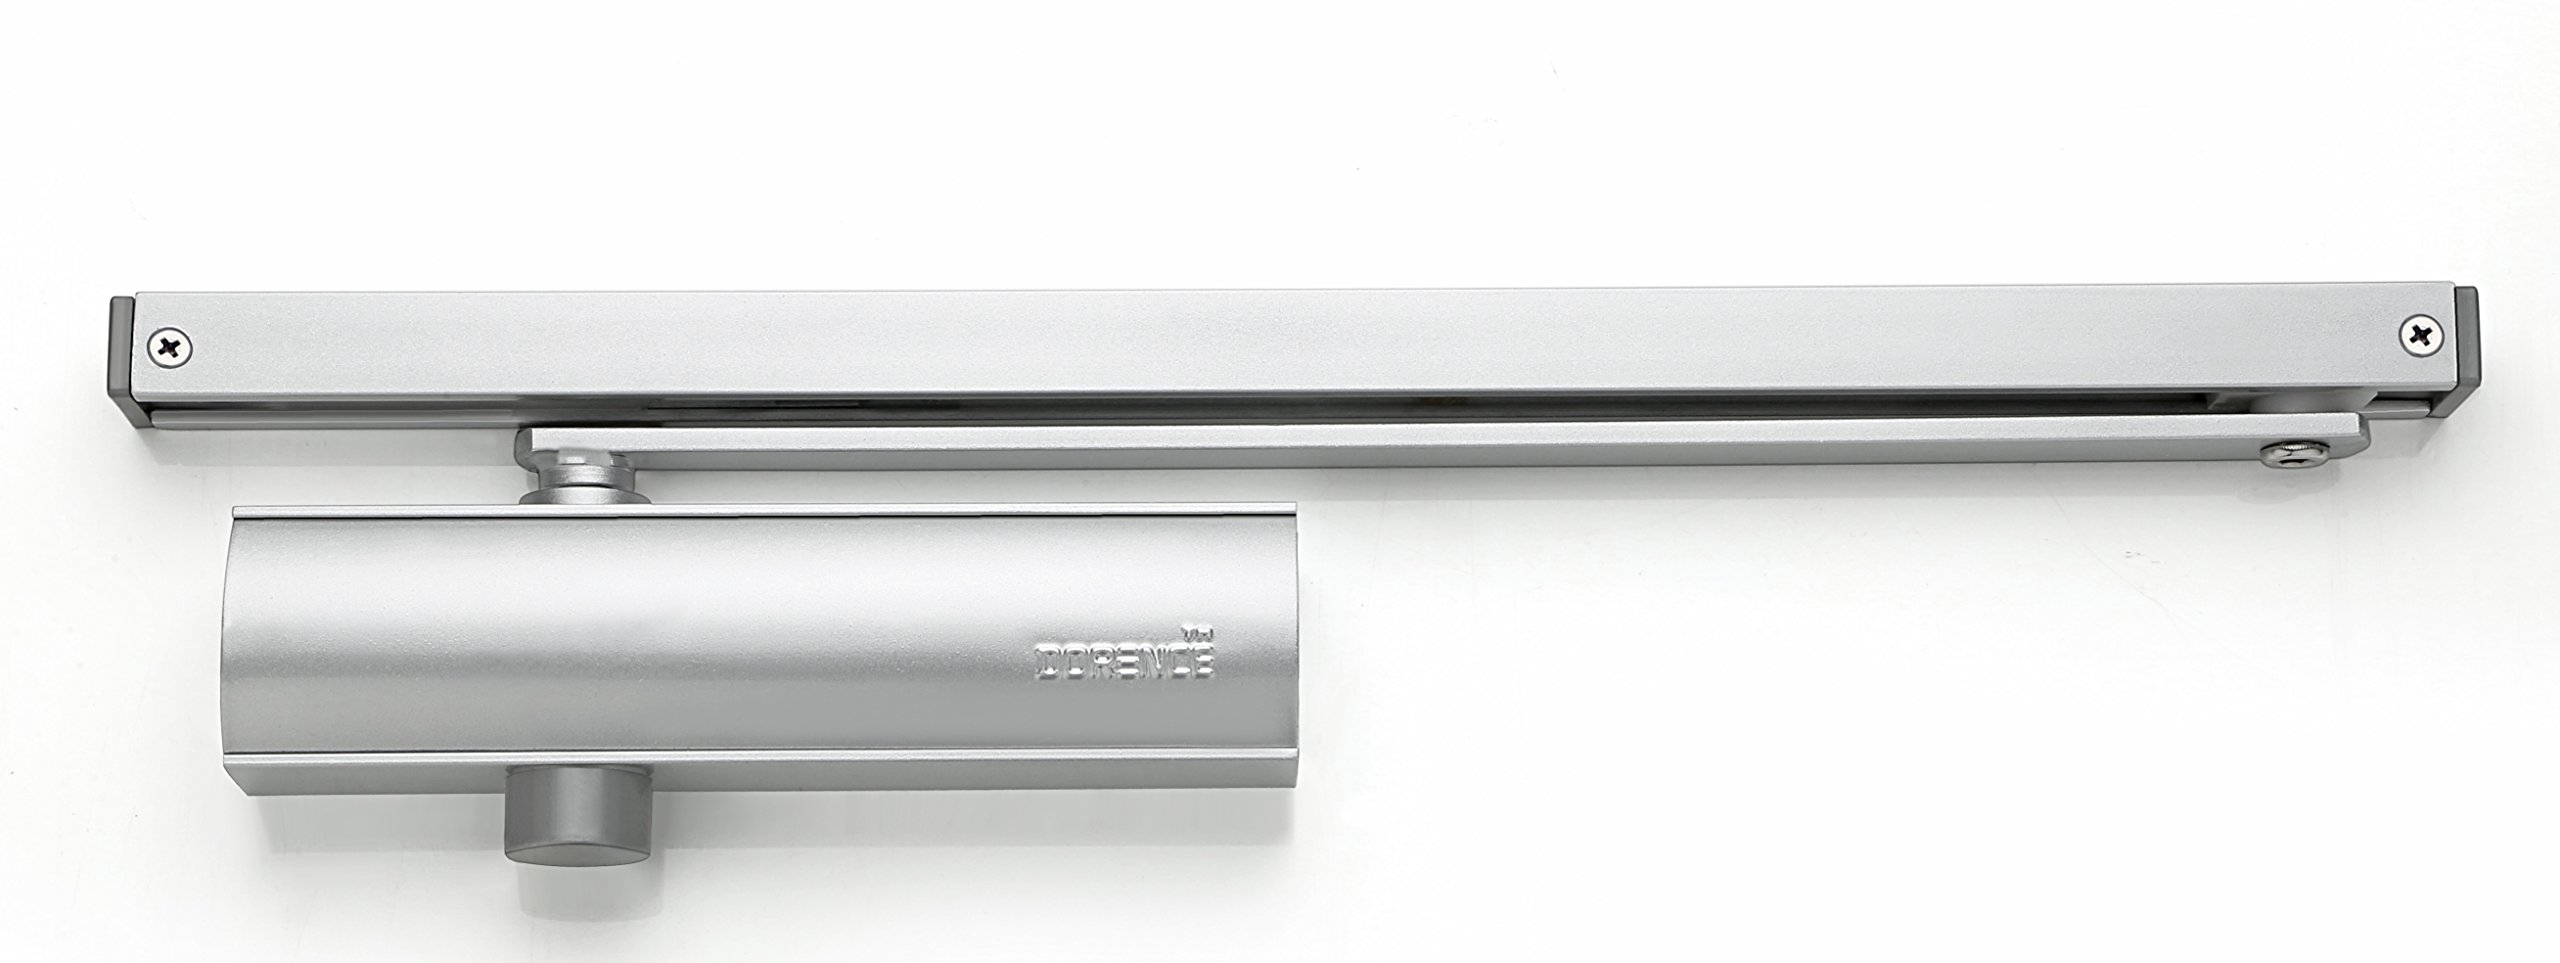 Hold Open Arm Assembly Heavy duty automatic Door Closer - Commercial grade Hydraulic operated - For Residential/Commercial Use Model DI 500S